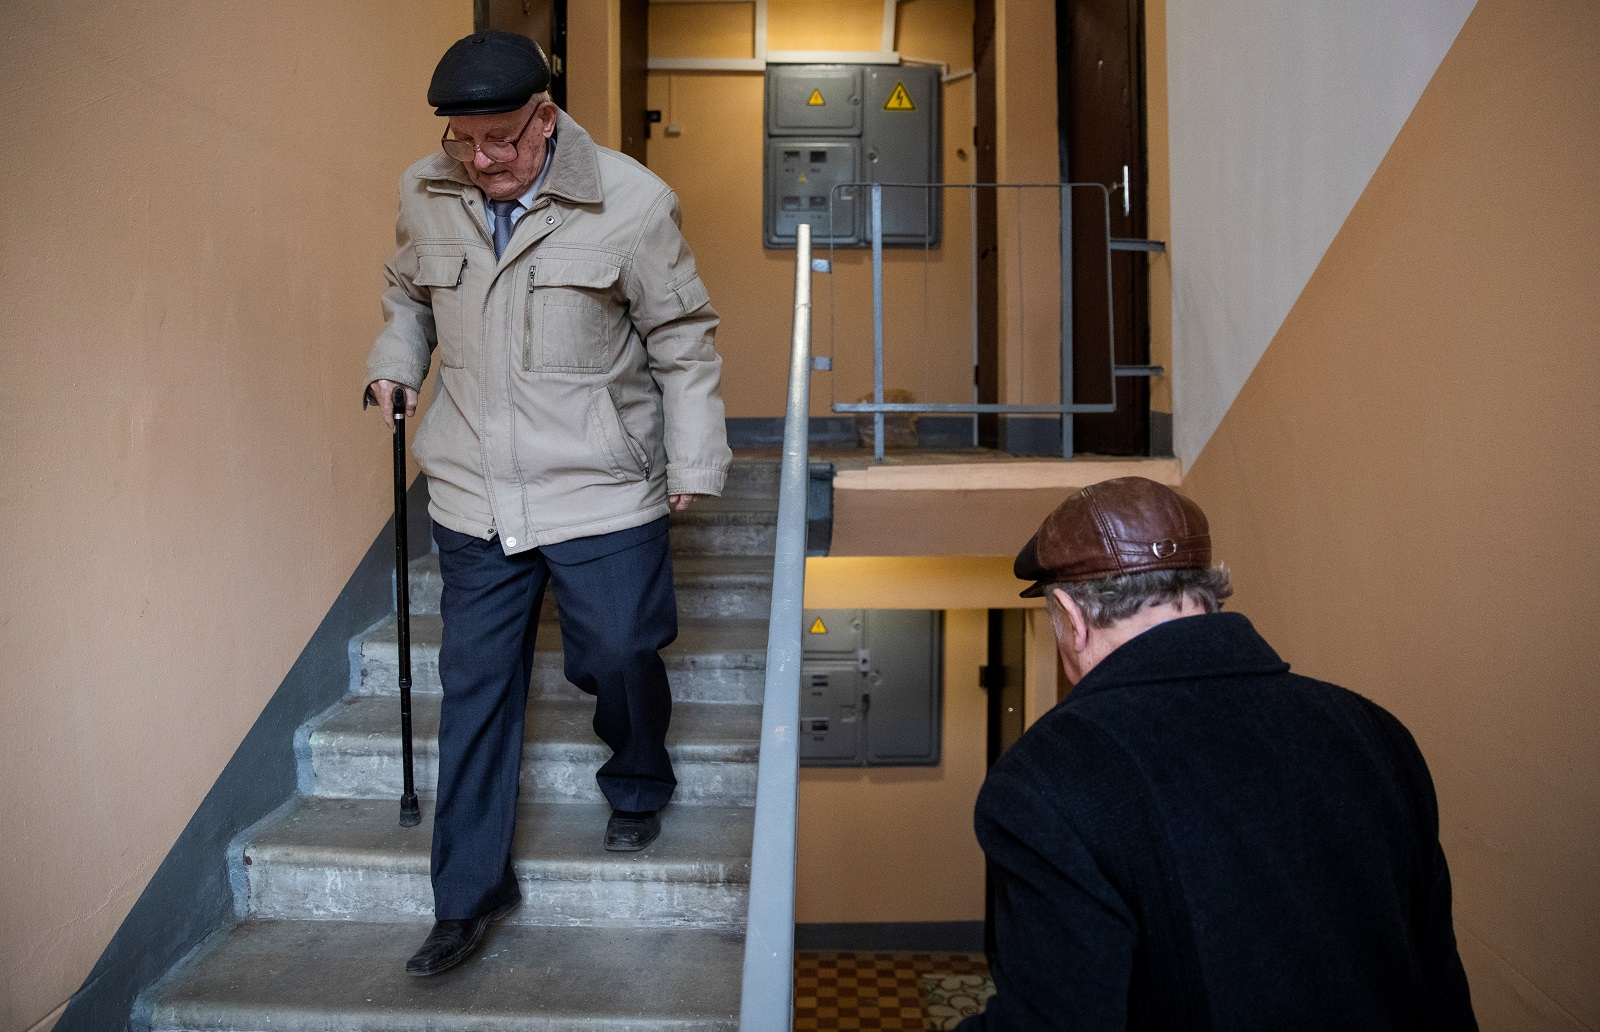 Veteran Nikolay Bagayev, 100, walks down the stairs in his apartment block in Korolyov, north of Moscow, Russia April 18, 2019. Bagayev regularly takes the stairs to his apartment on the 5th floor. REUTERS/Maxim Shemetov